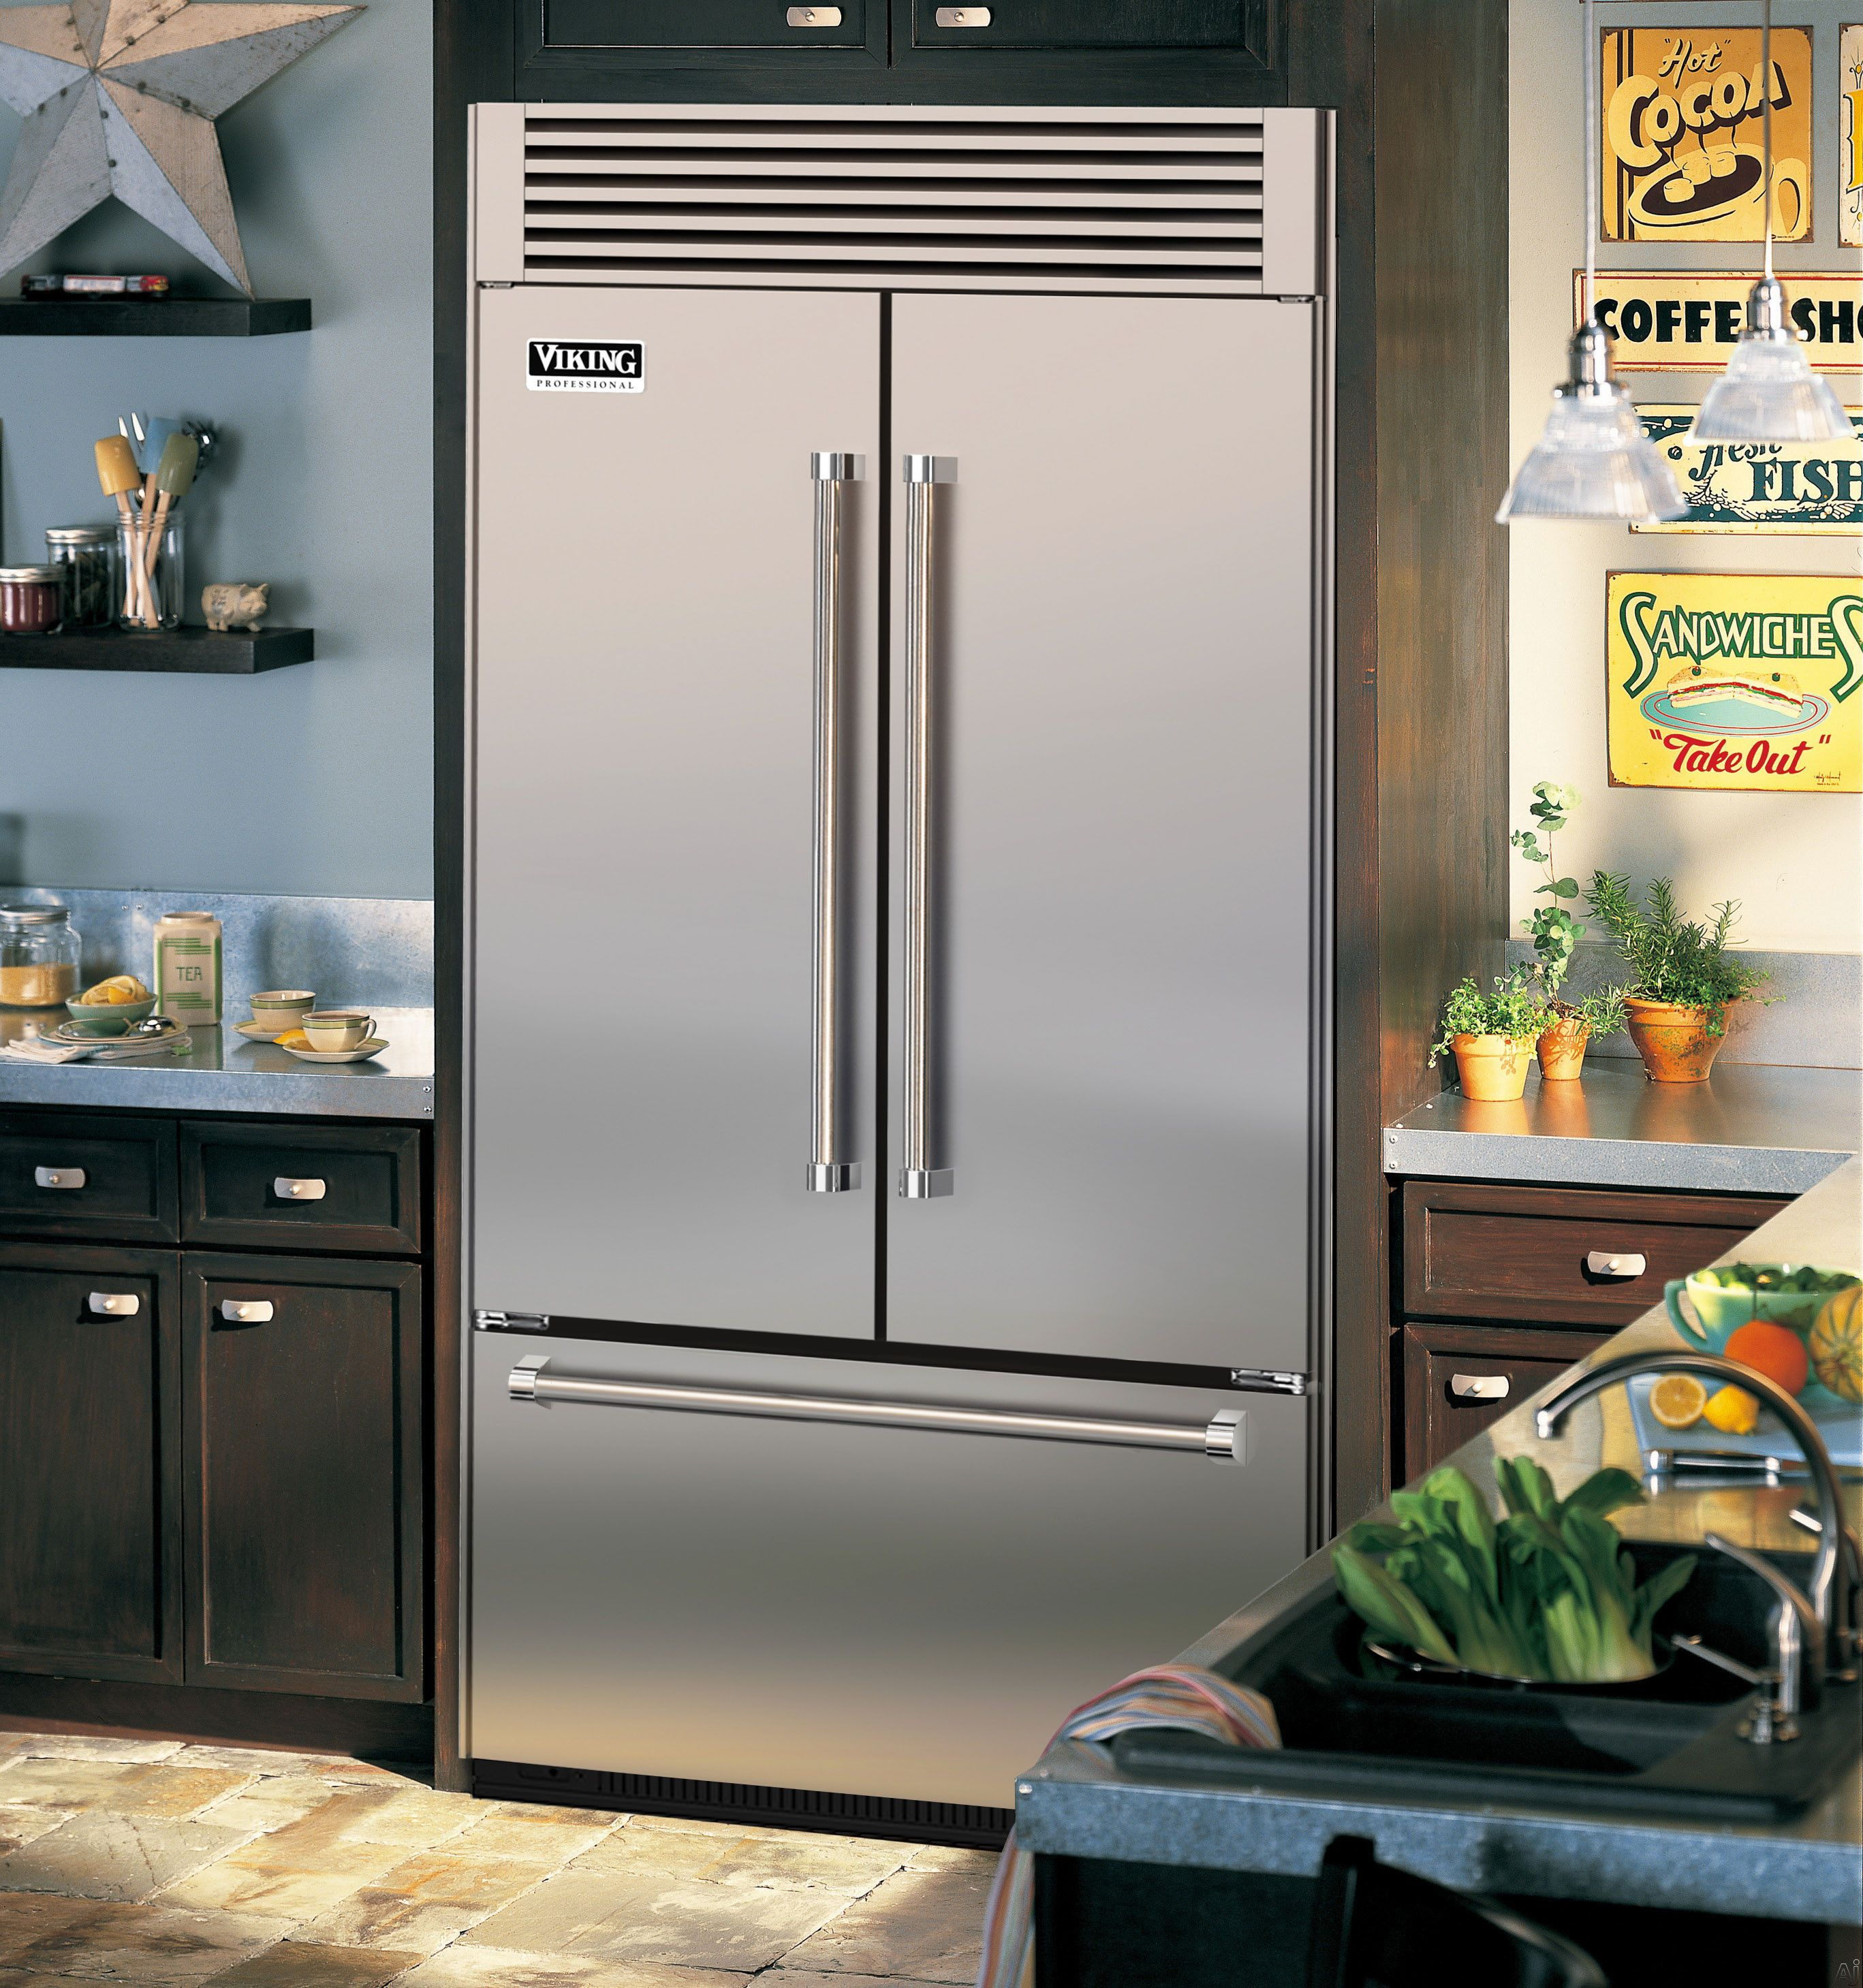 refrigerator image ge products door en appliances applproducts french refrigerators sale refrigeration